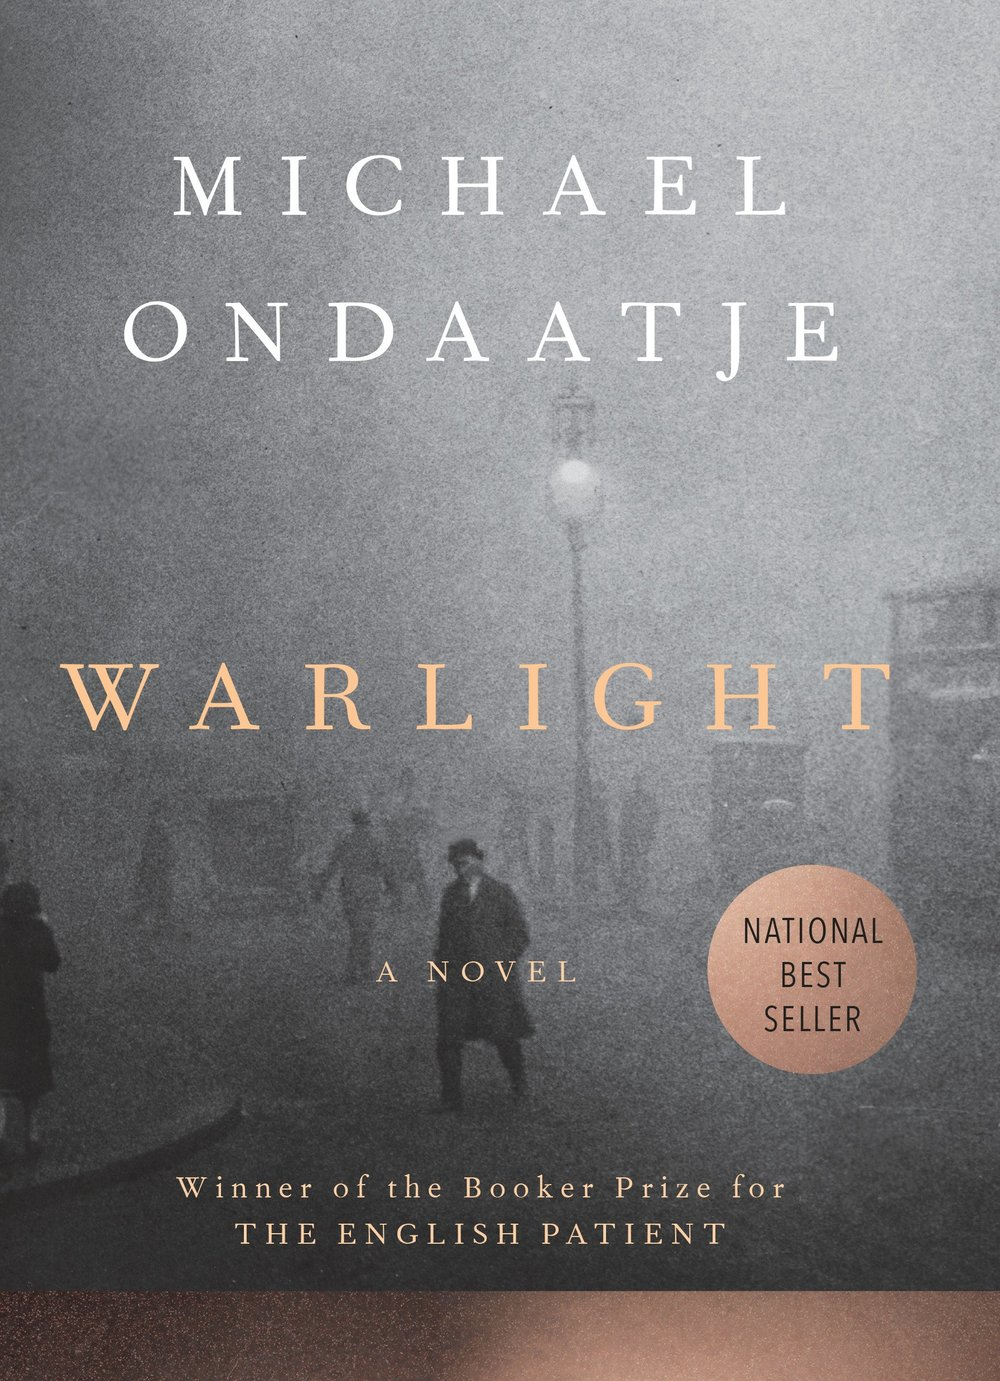 Warlight by Michael Ondaatje.jpg